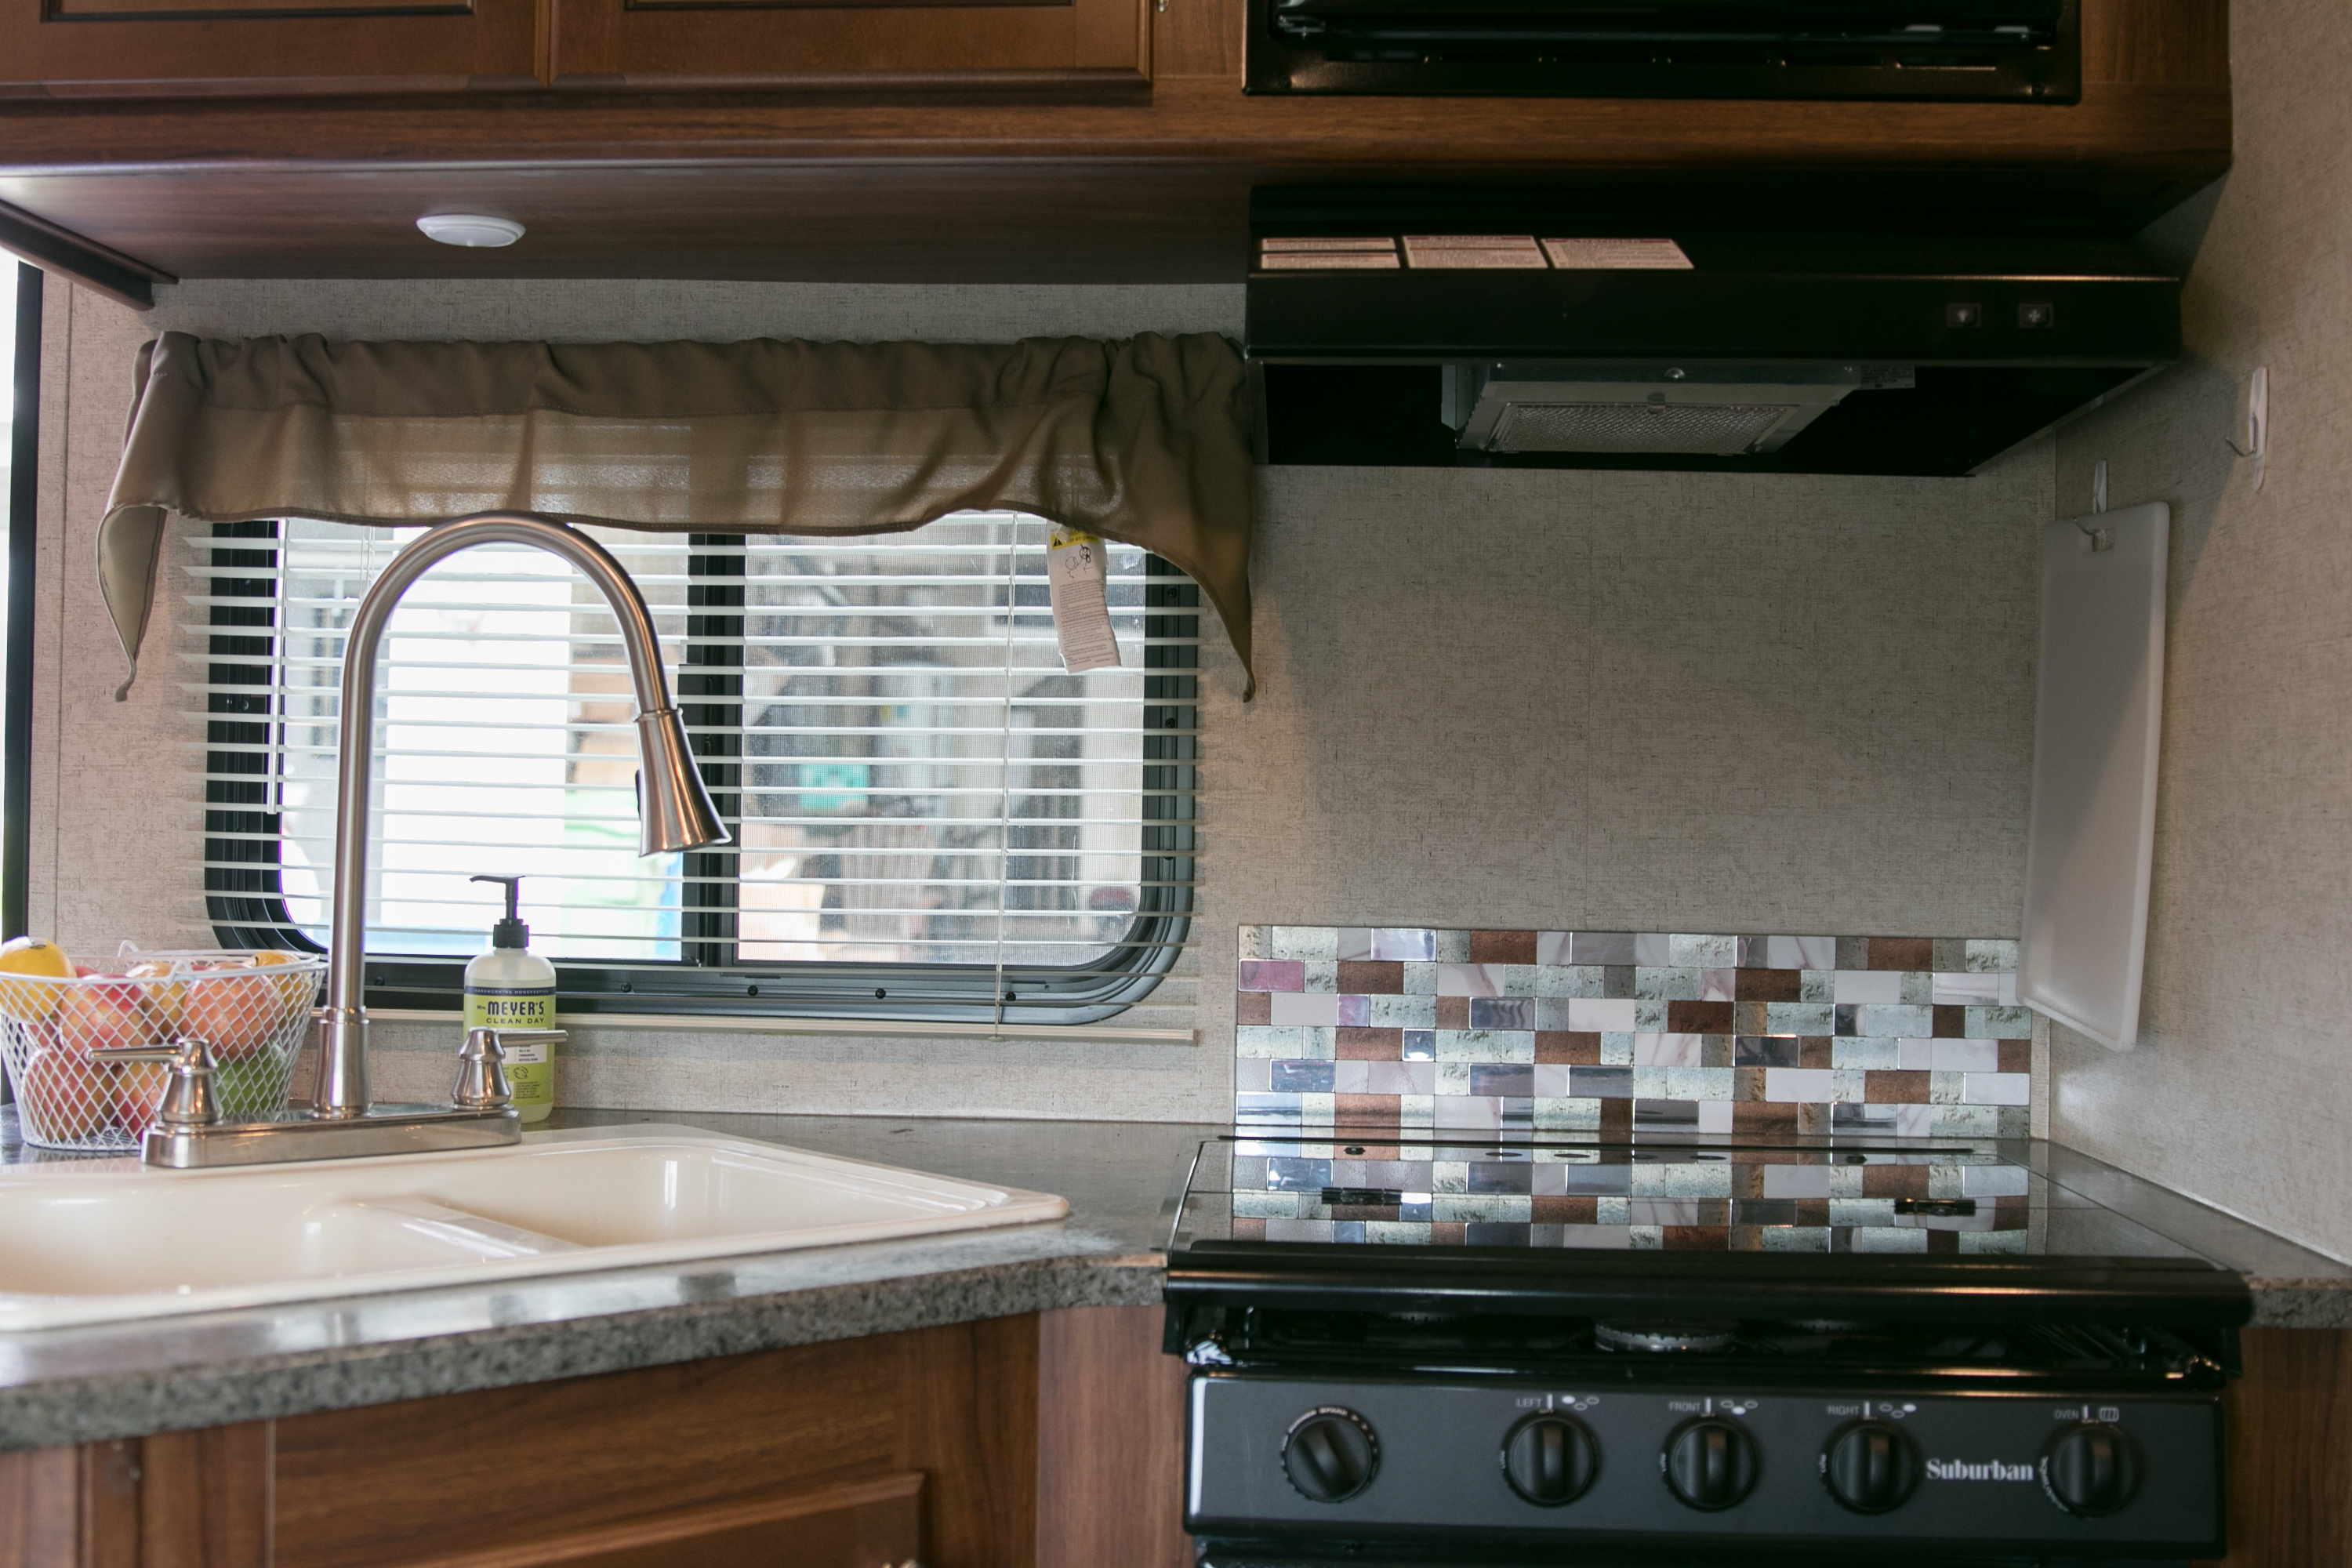 Kitchen Sink and Stove. Heartland M 2017